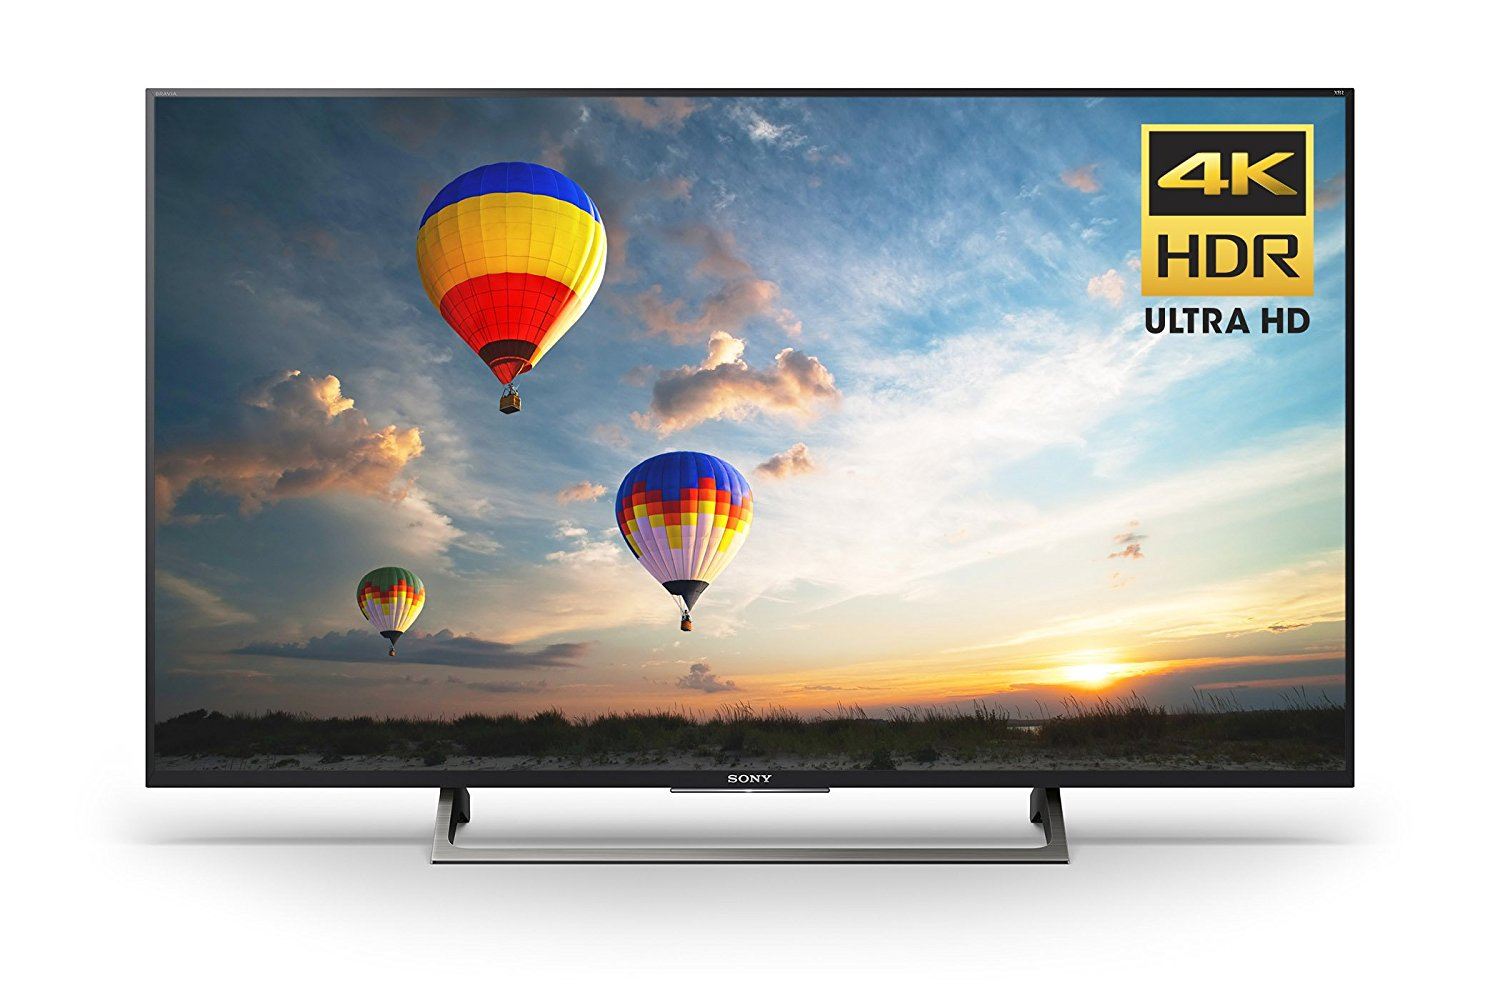 An image of Sony XBR55X800E 55-Inch HDR 4K LED 60Hz Smart TV with Sony Motionflow XR 240